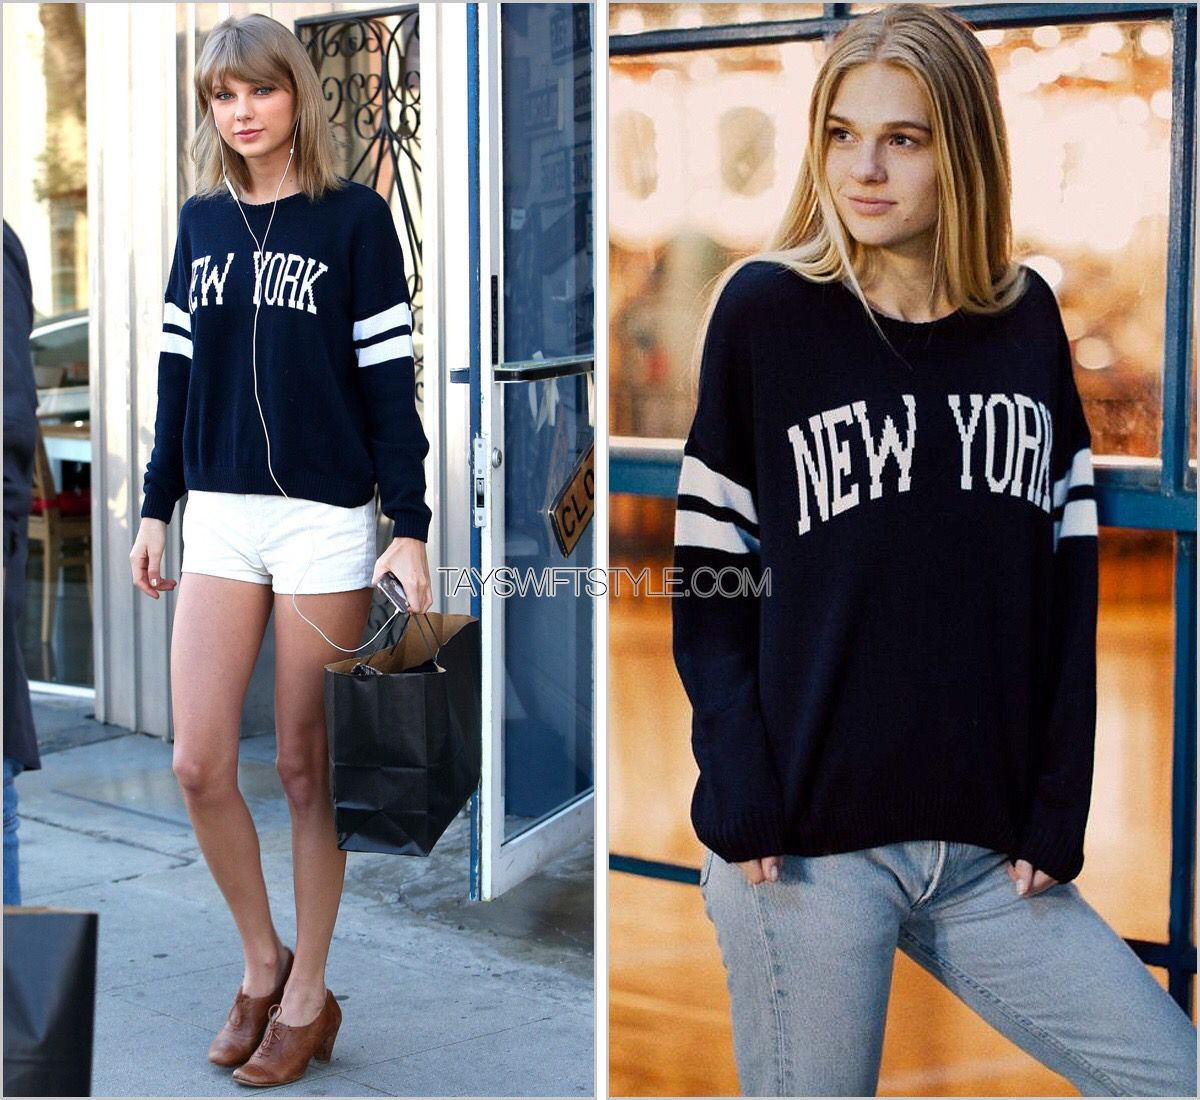 Pin By Anna Conley On Taylor Taylor Swift Style Style Fashion